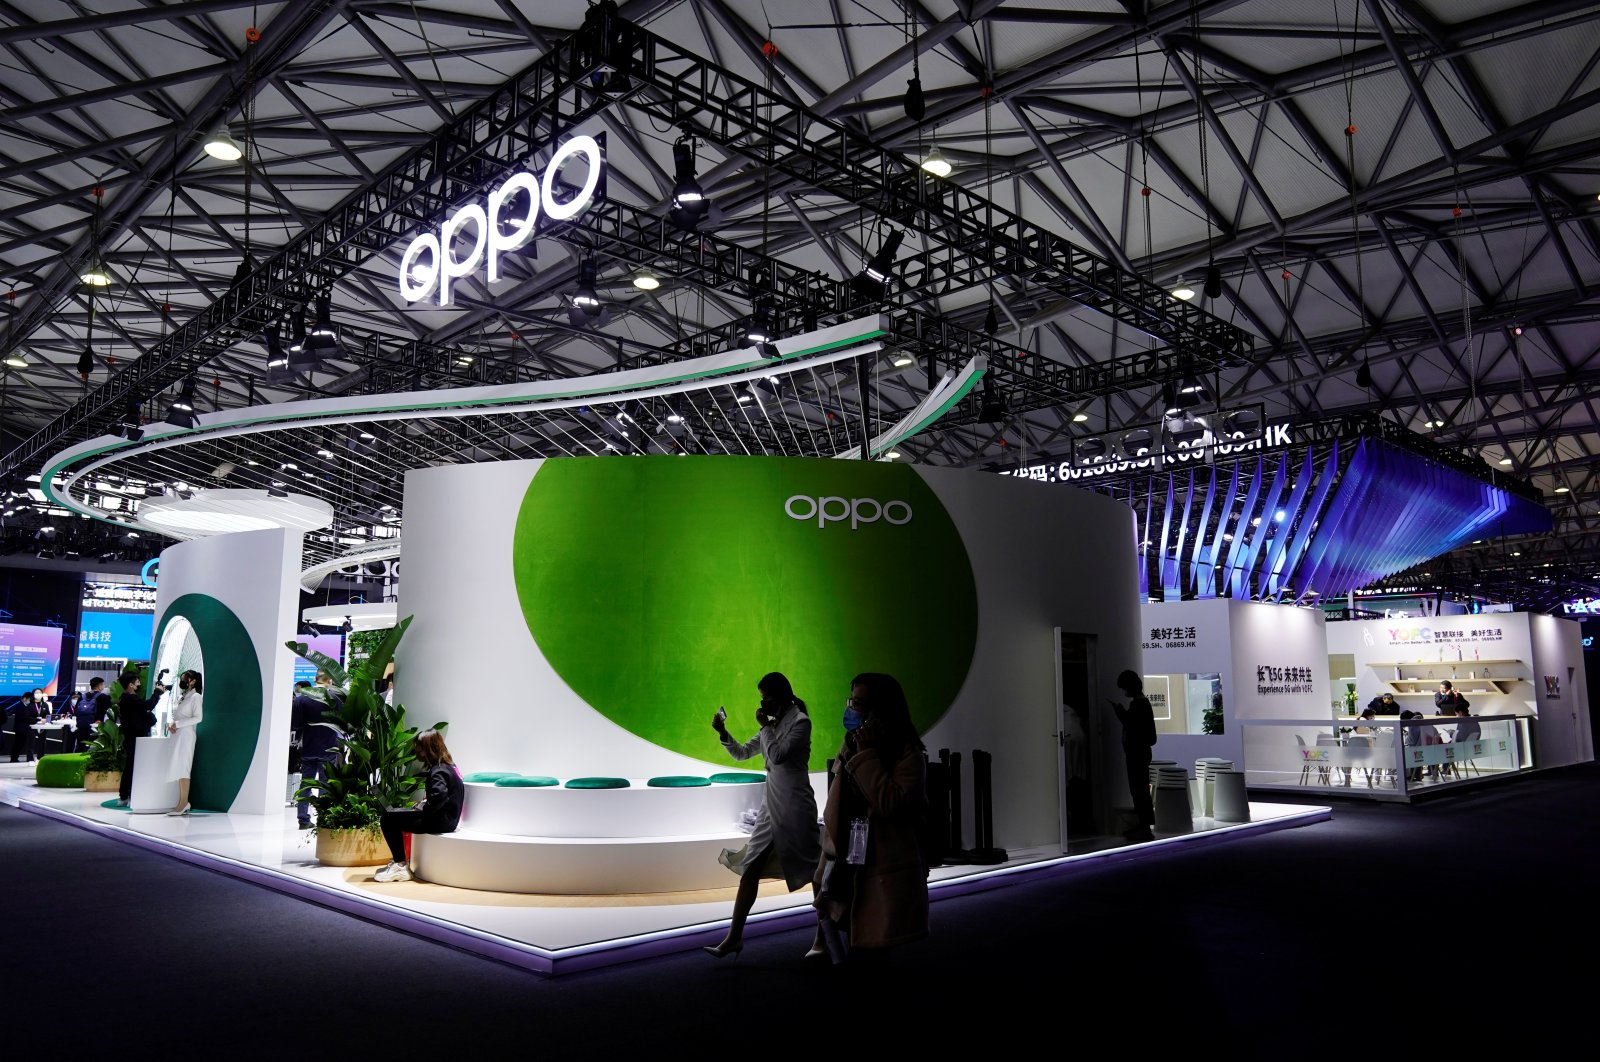 People walk past a booth of smartphone maker Oppo at the Mobile World Congress (MWC) in Shanghai, China, Feb. 23, 2021. (Reuters Photo)